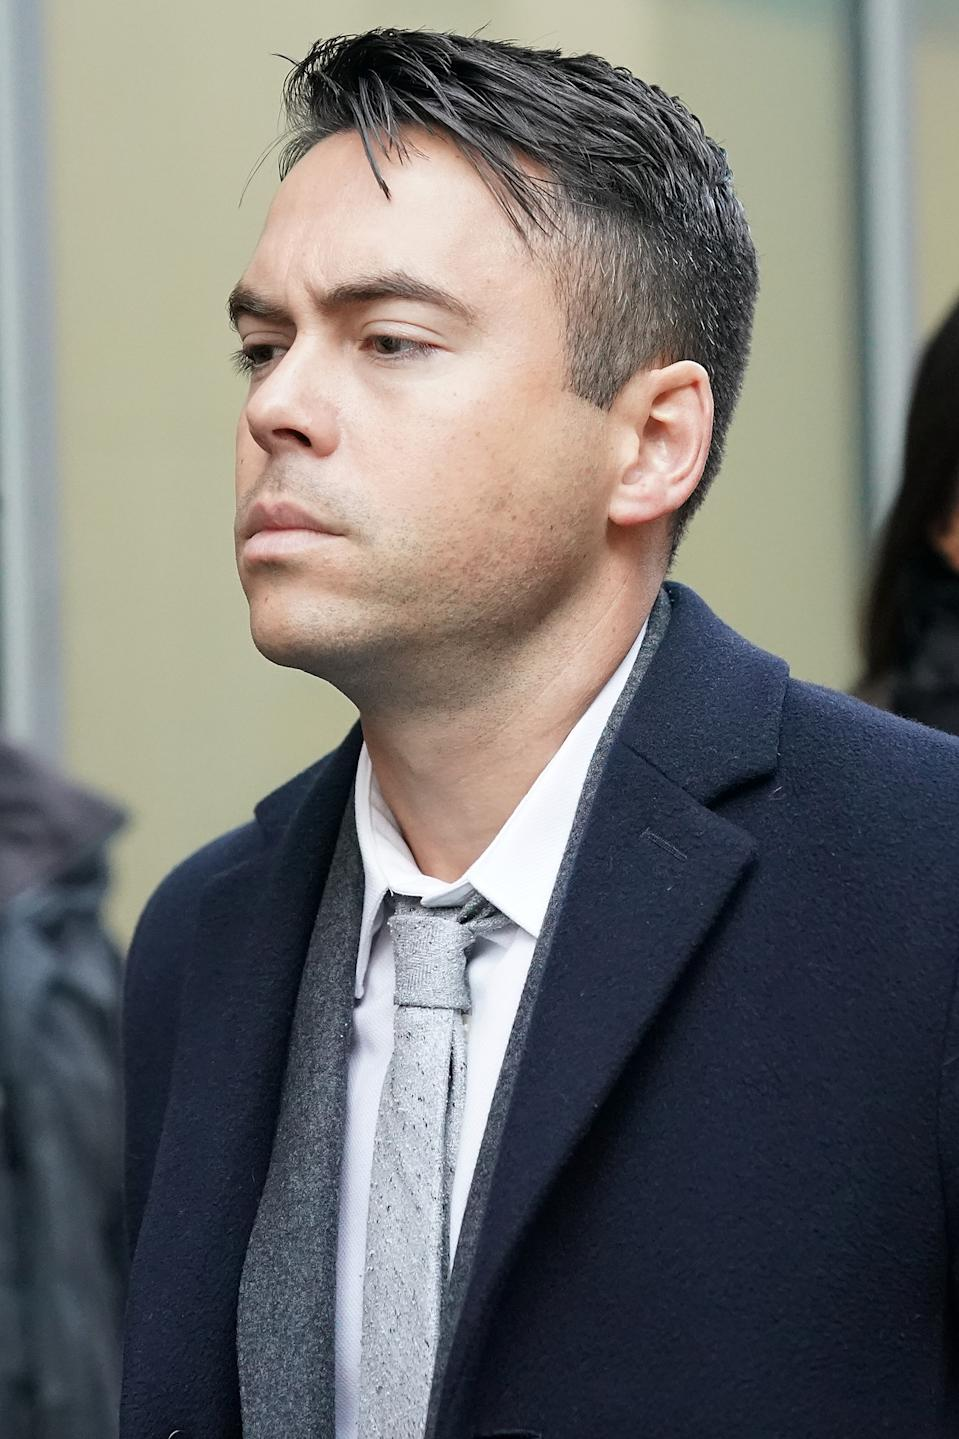 Bruno Langley's contract on the soap was terminated in 2017. (Photo by Christopher Furlong/Getty Images)